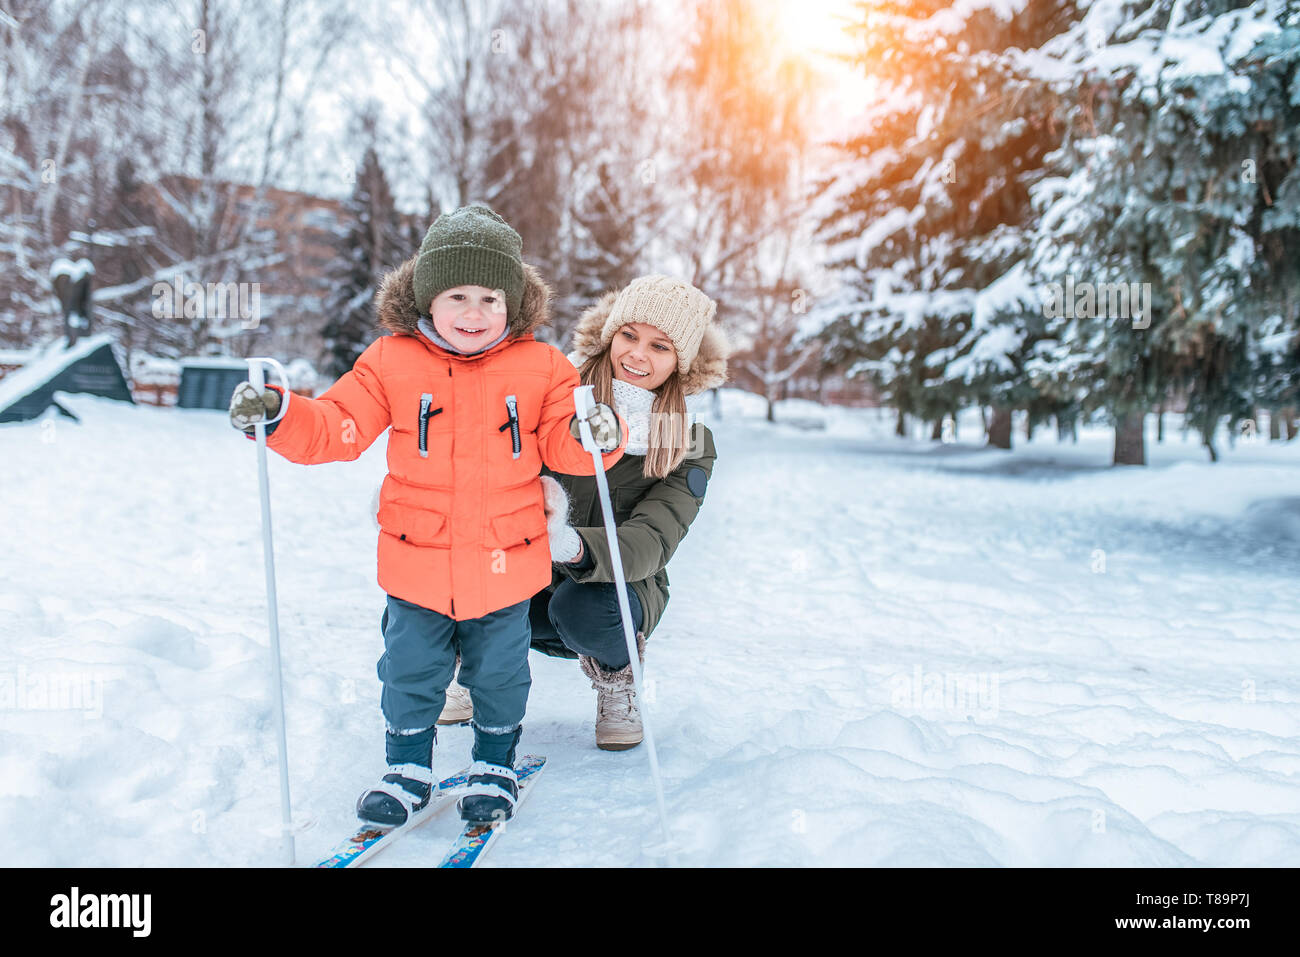 Young mother woman happy smiling, son boy 3 years old laughs. In winter, outside park, background is snow drifts Christmas tree. Free space. Children - Stock Image